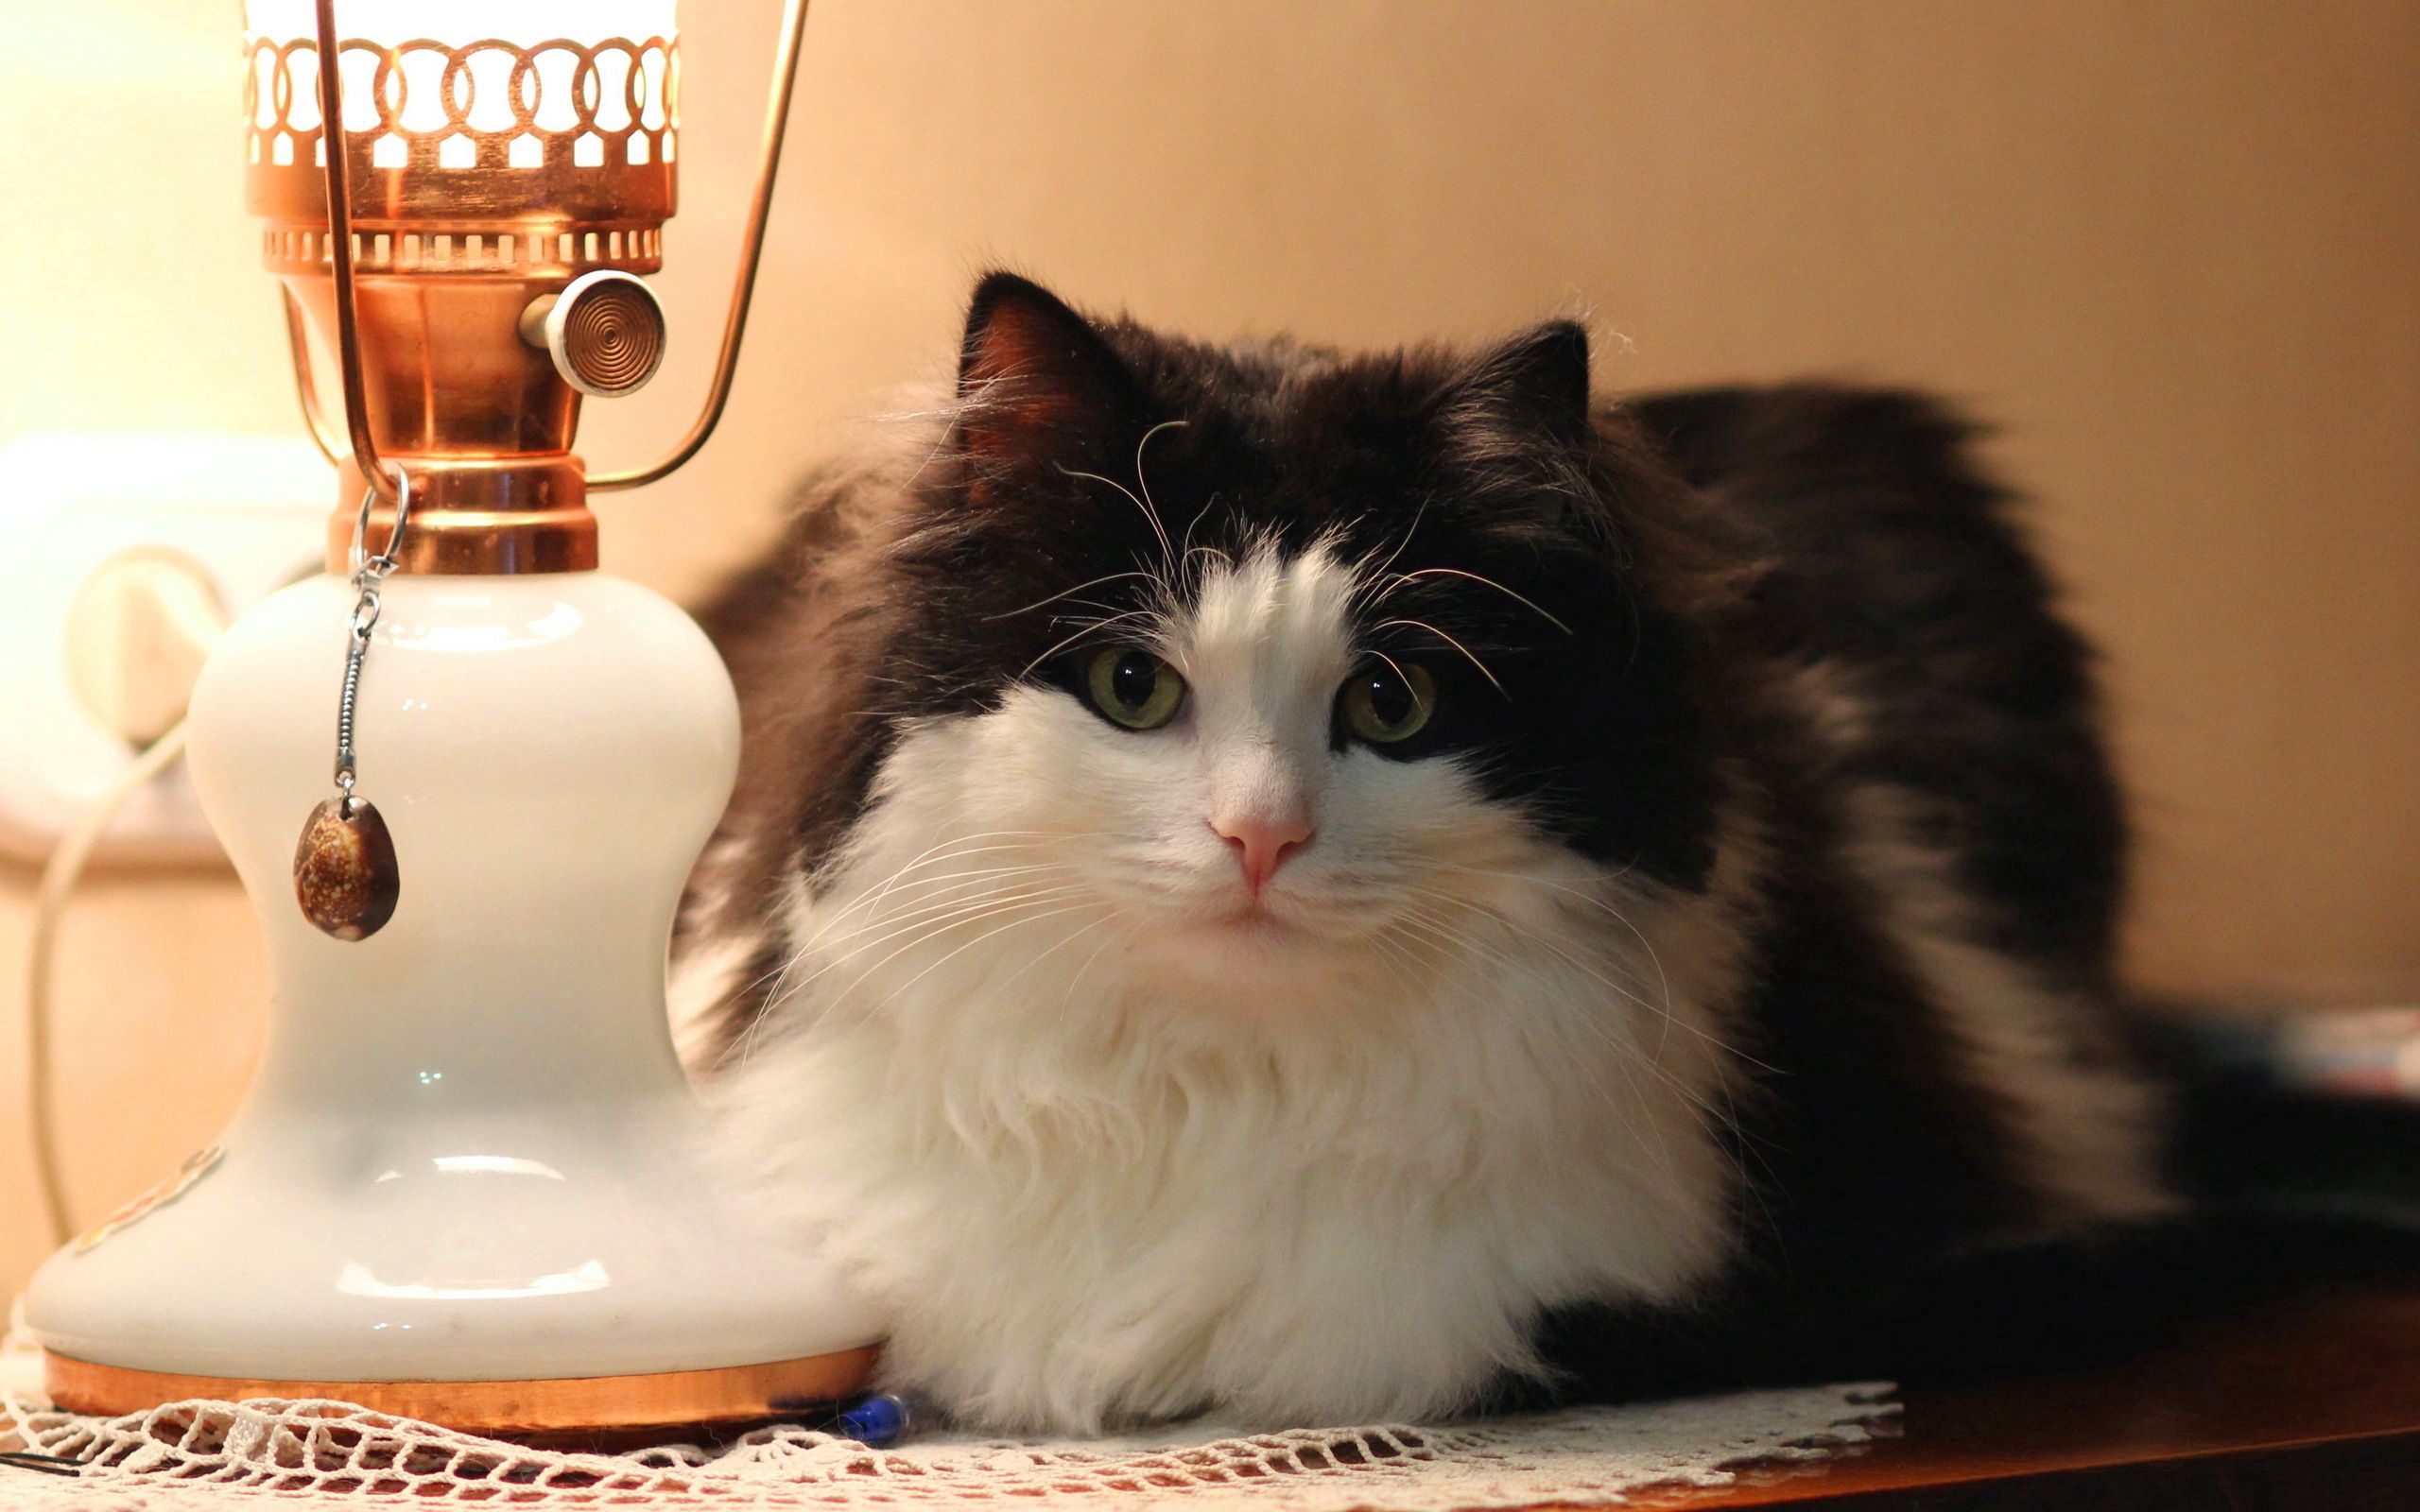 136982 download wallpaper Animals, Cat, Lamp, Floor Lamp, Fluffy, To Lie Down, Lie screensavers and pictures for free